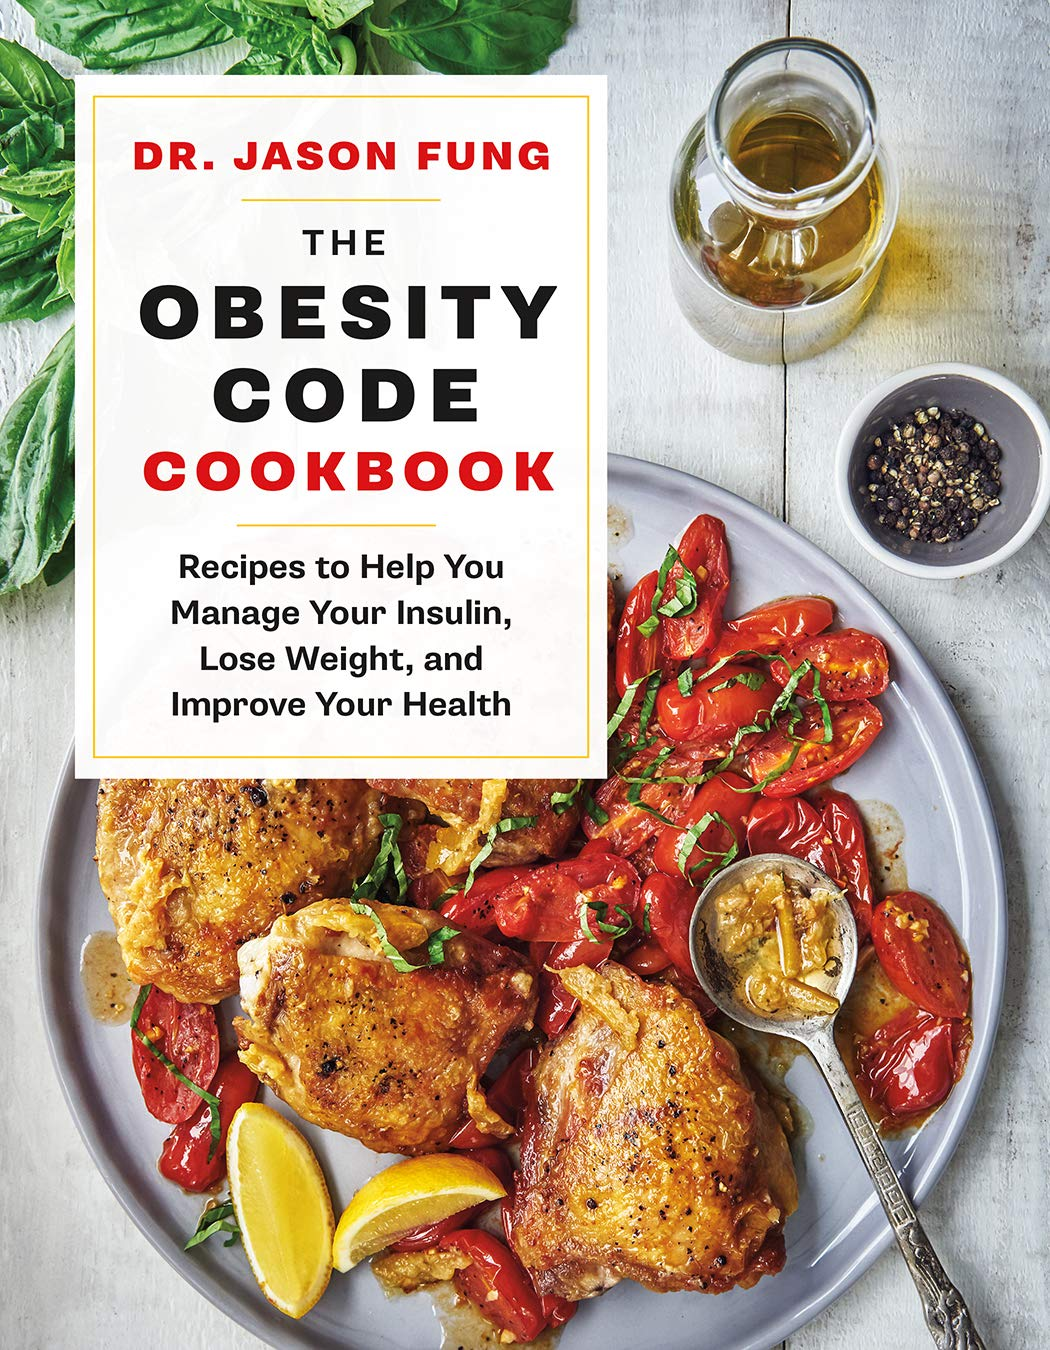 The Obesity Code Cookbook: Recipes to Help You Manage Insulin, Lose Weight, and Improve Your Health (The Wellness Code) - Tolerant Planet